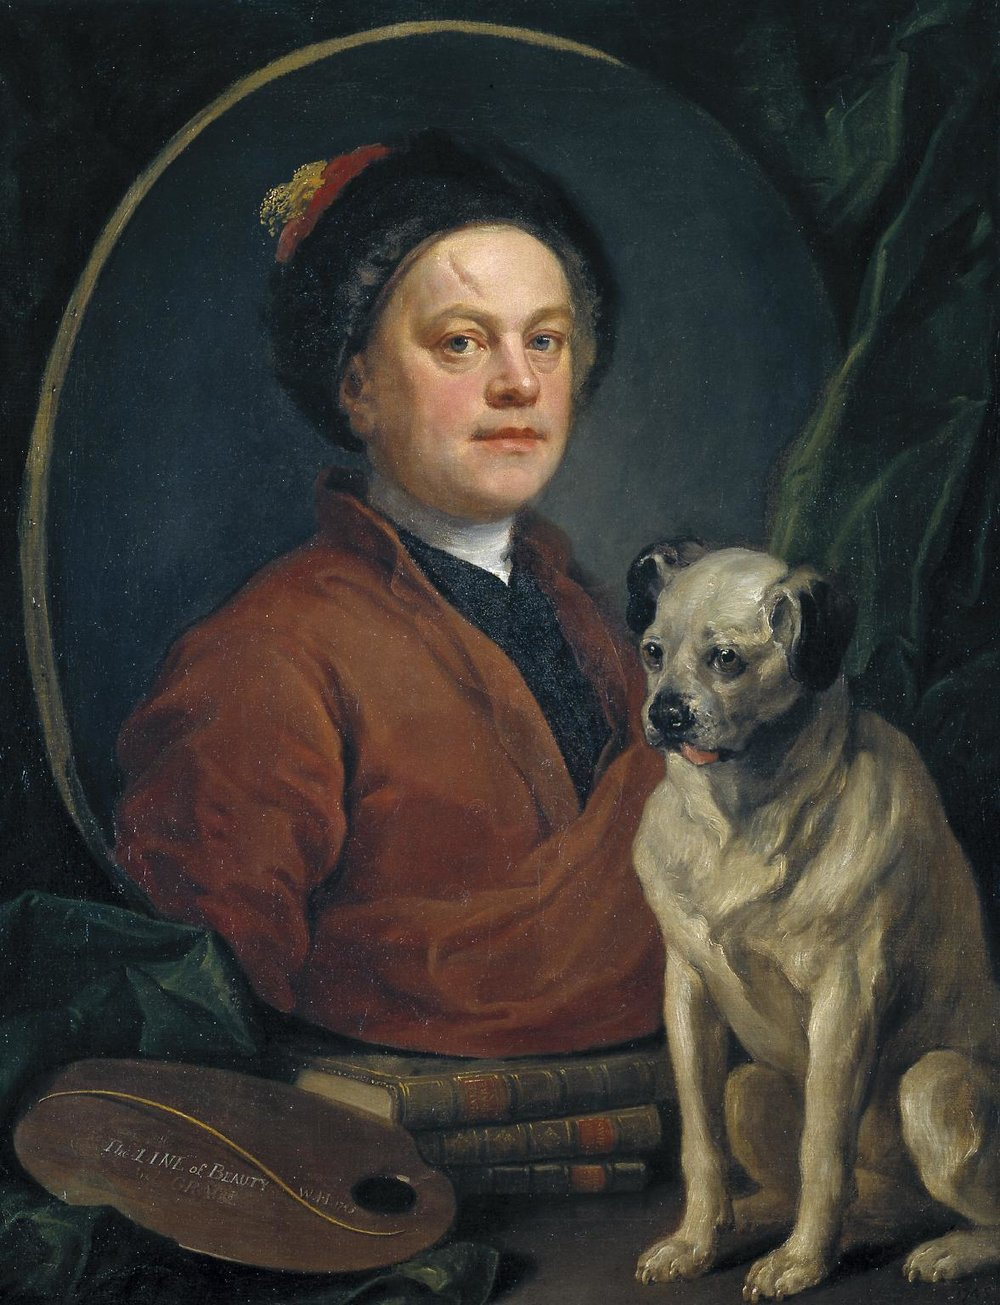 William Hogarth,  The Painter and his Pug,  1745, oil on canvas, 90 x 69.9 cm, Tate.